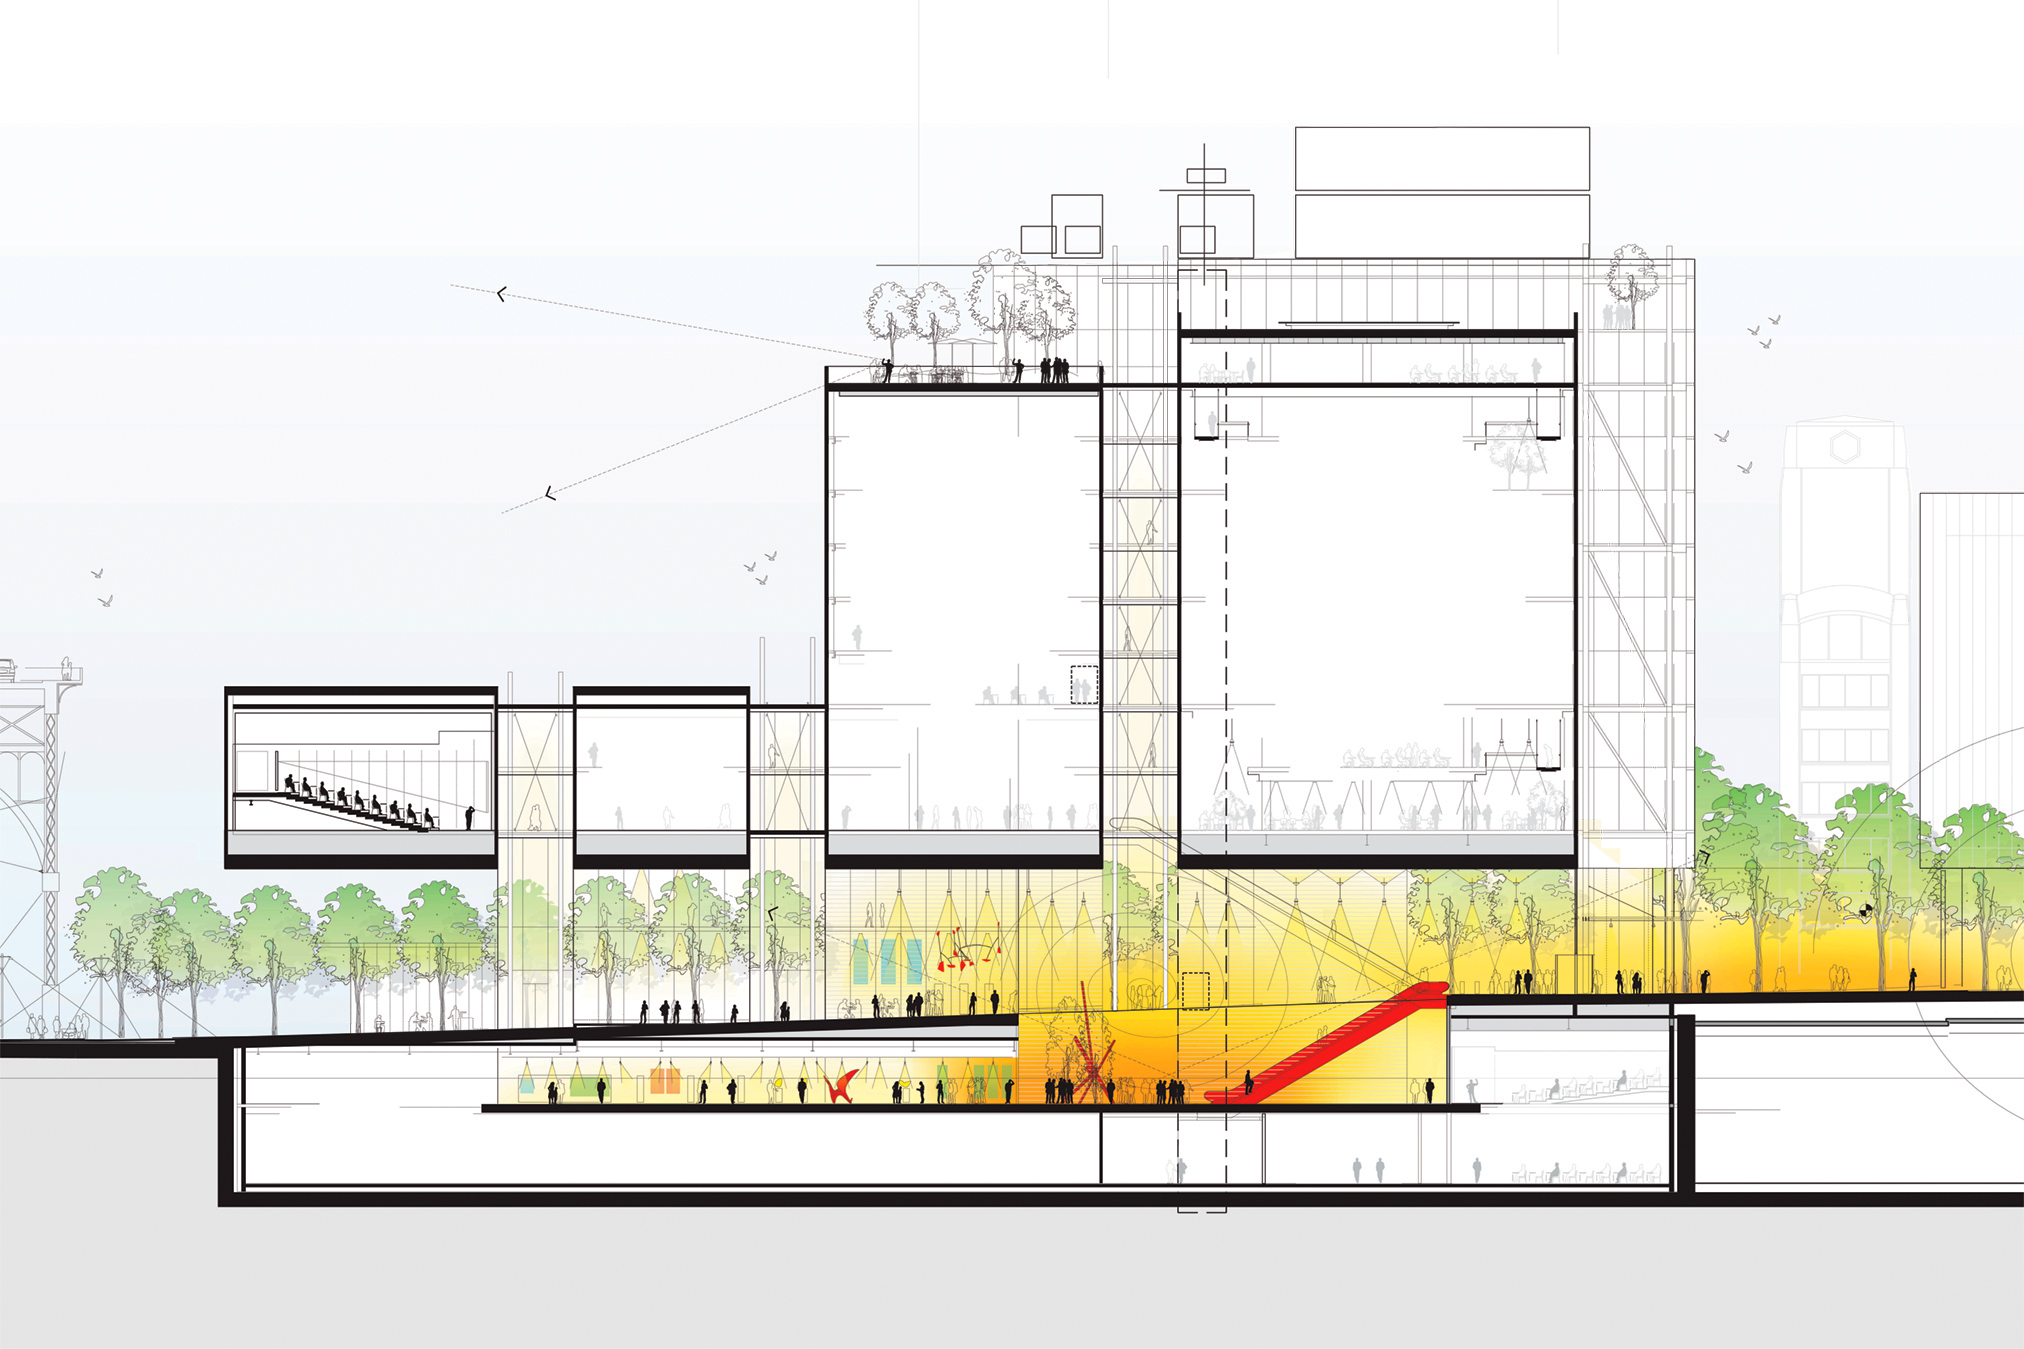 Image by Renzo Piano Building Workshop